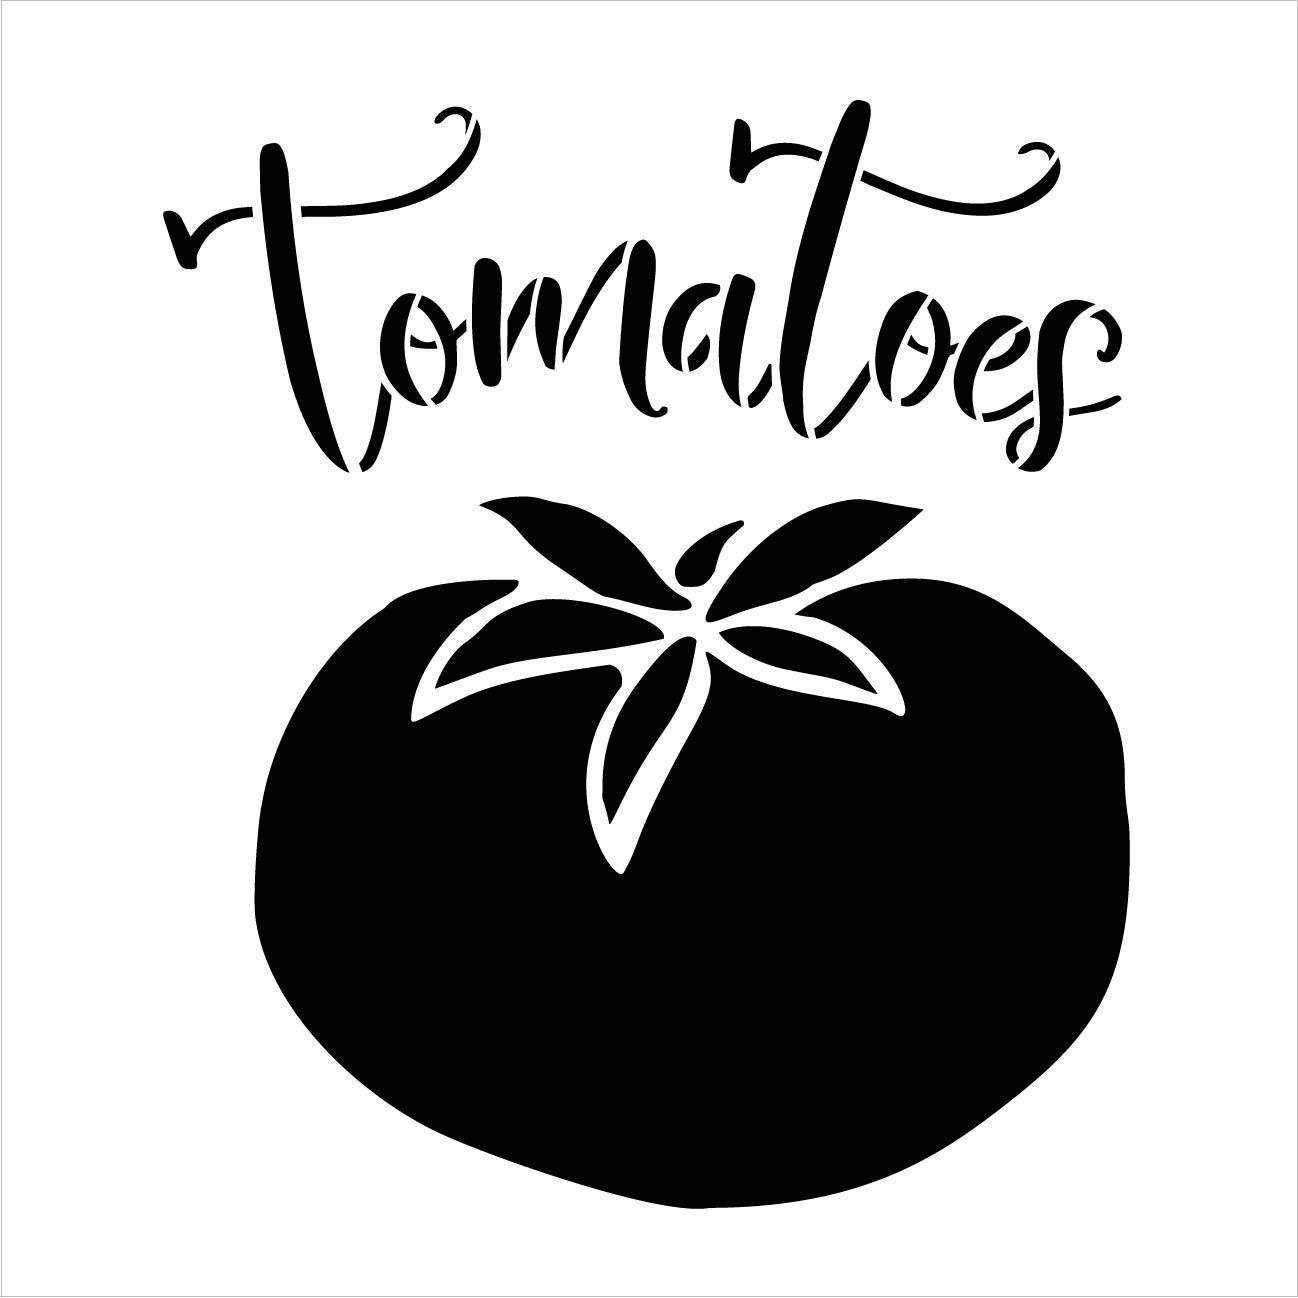 Tomatoes Garden Marker Stencil by StudioR12 | DIY Spring Backyard Outdoor Home Decor | Vegetable Plant Label | Craft & Paint Rustic Wood Signs | Reusable Mylar Template | Select Size